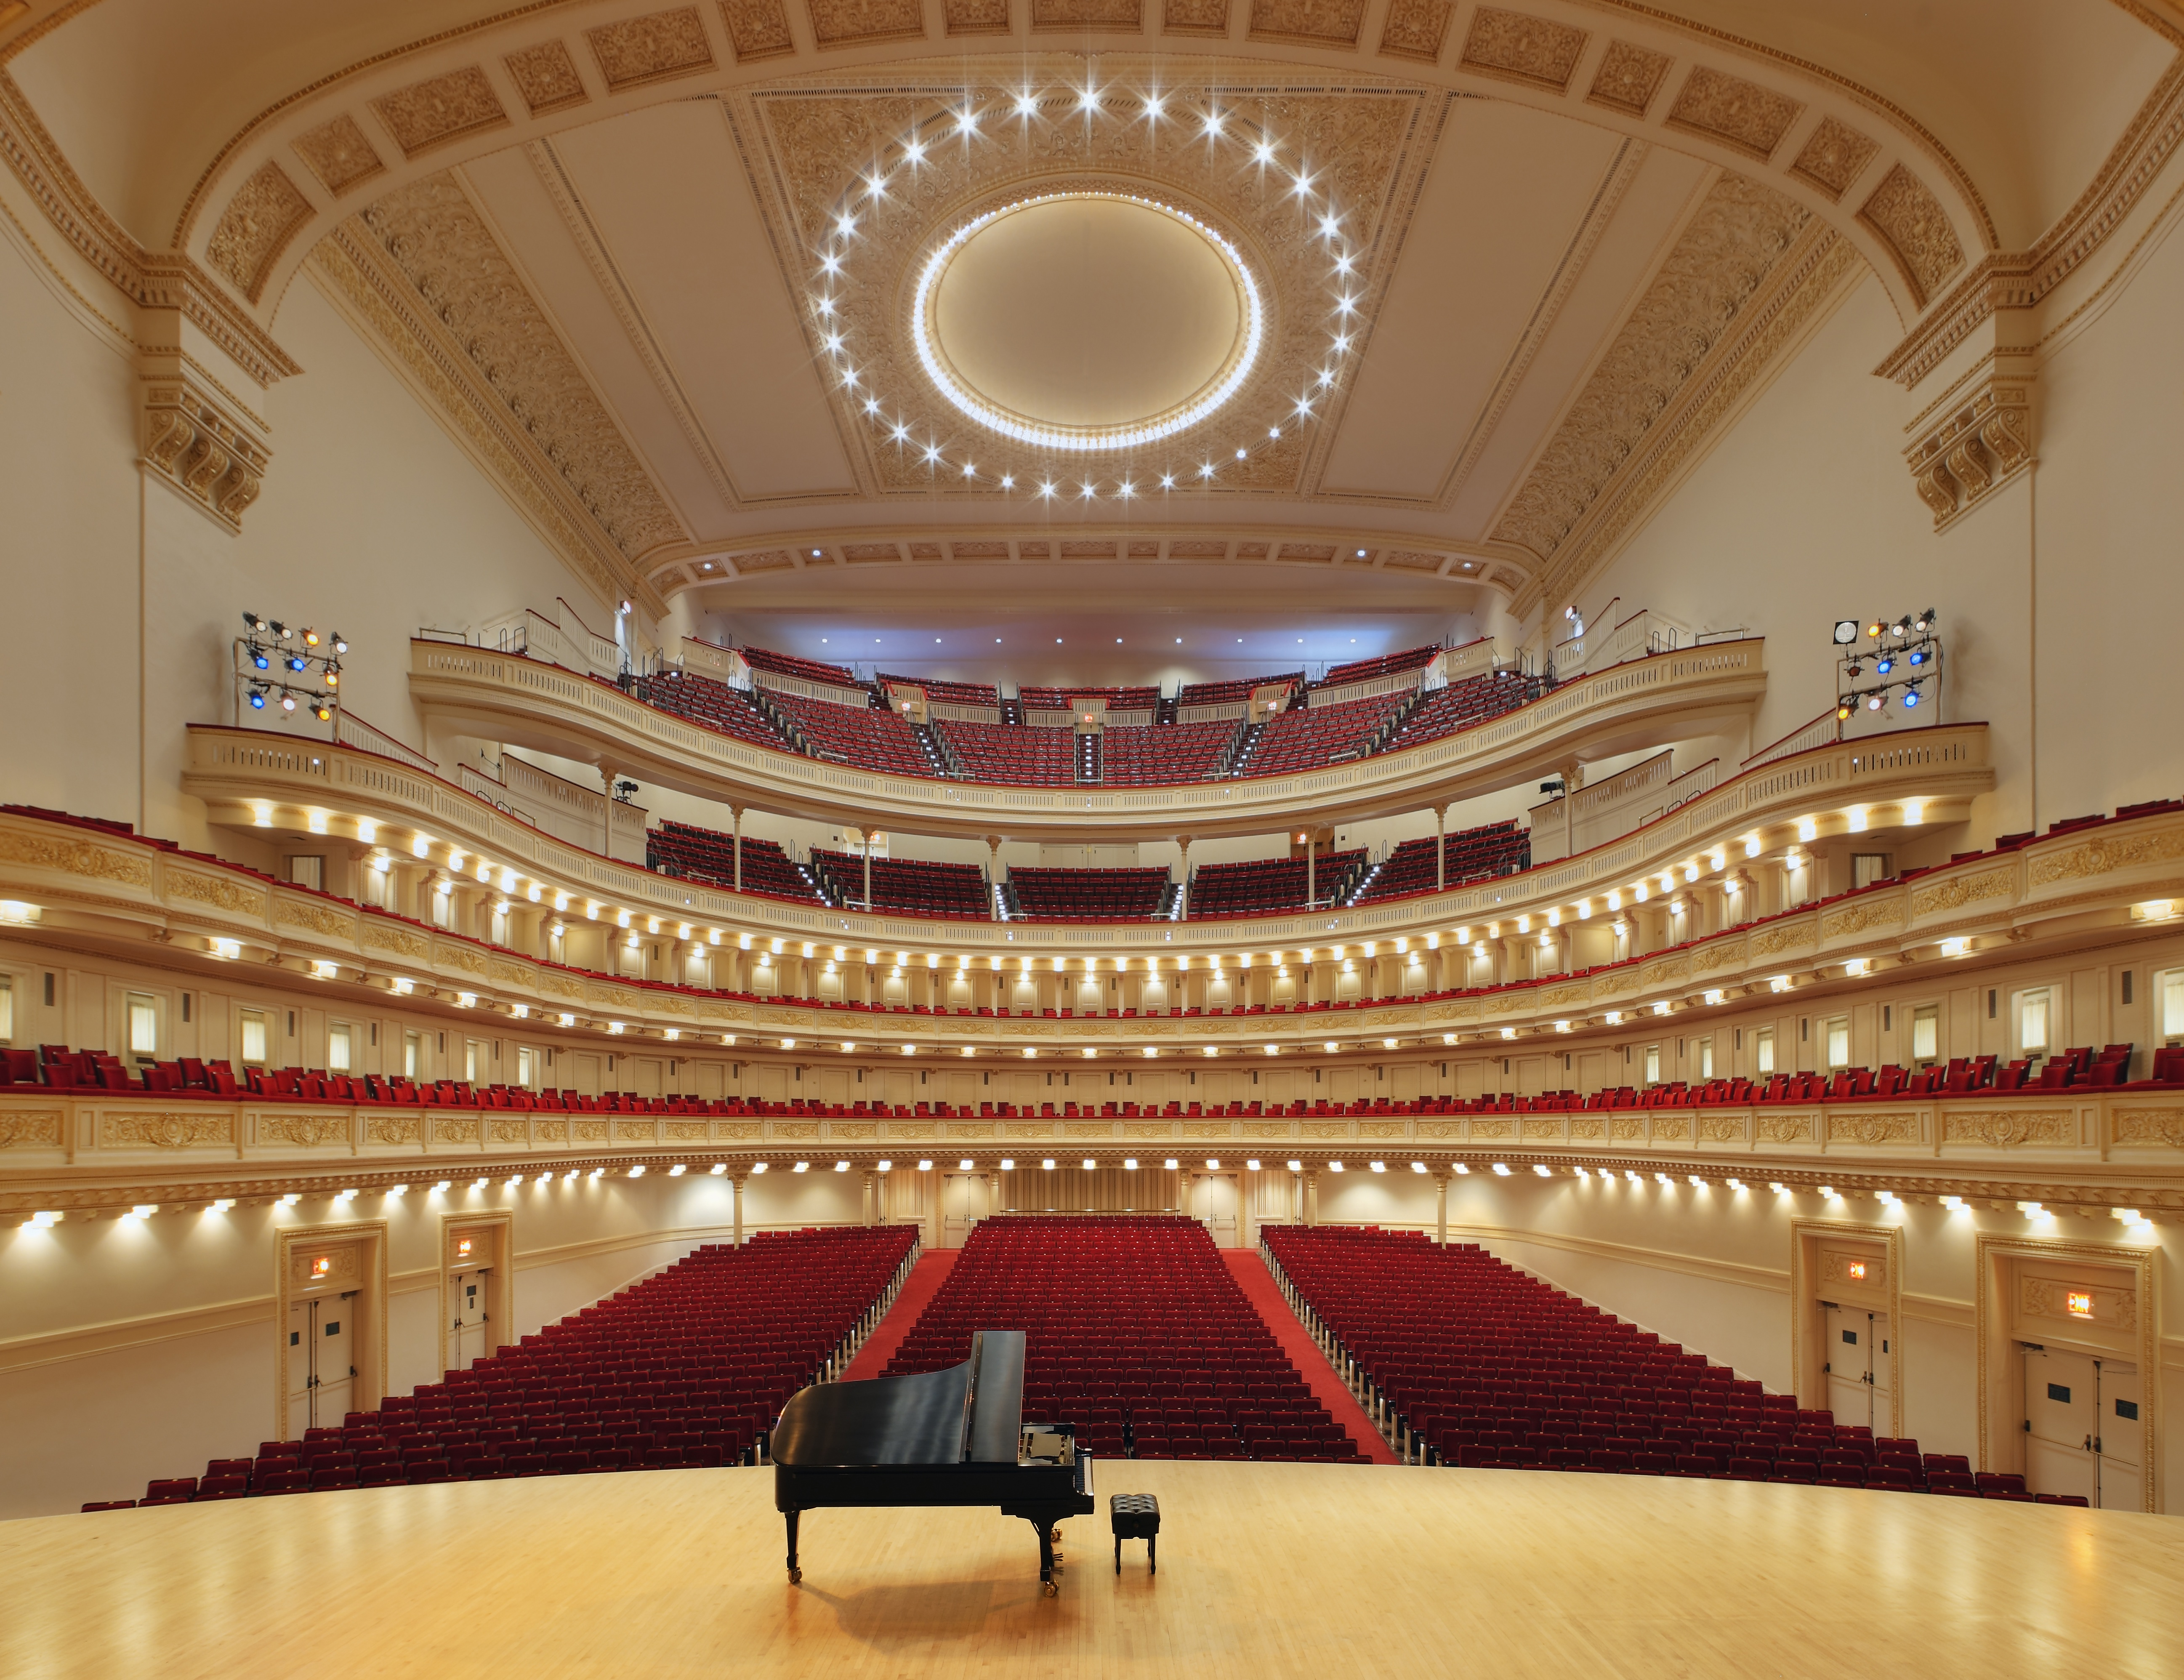 Hearing concerts for less at new york s carnegie hall for Interior design events nyc